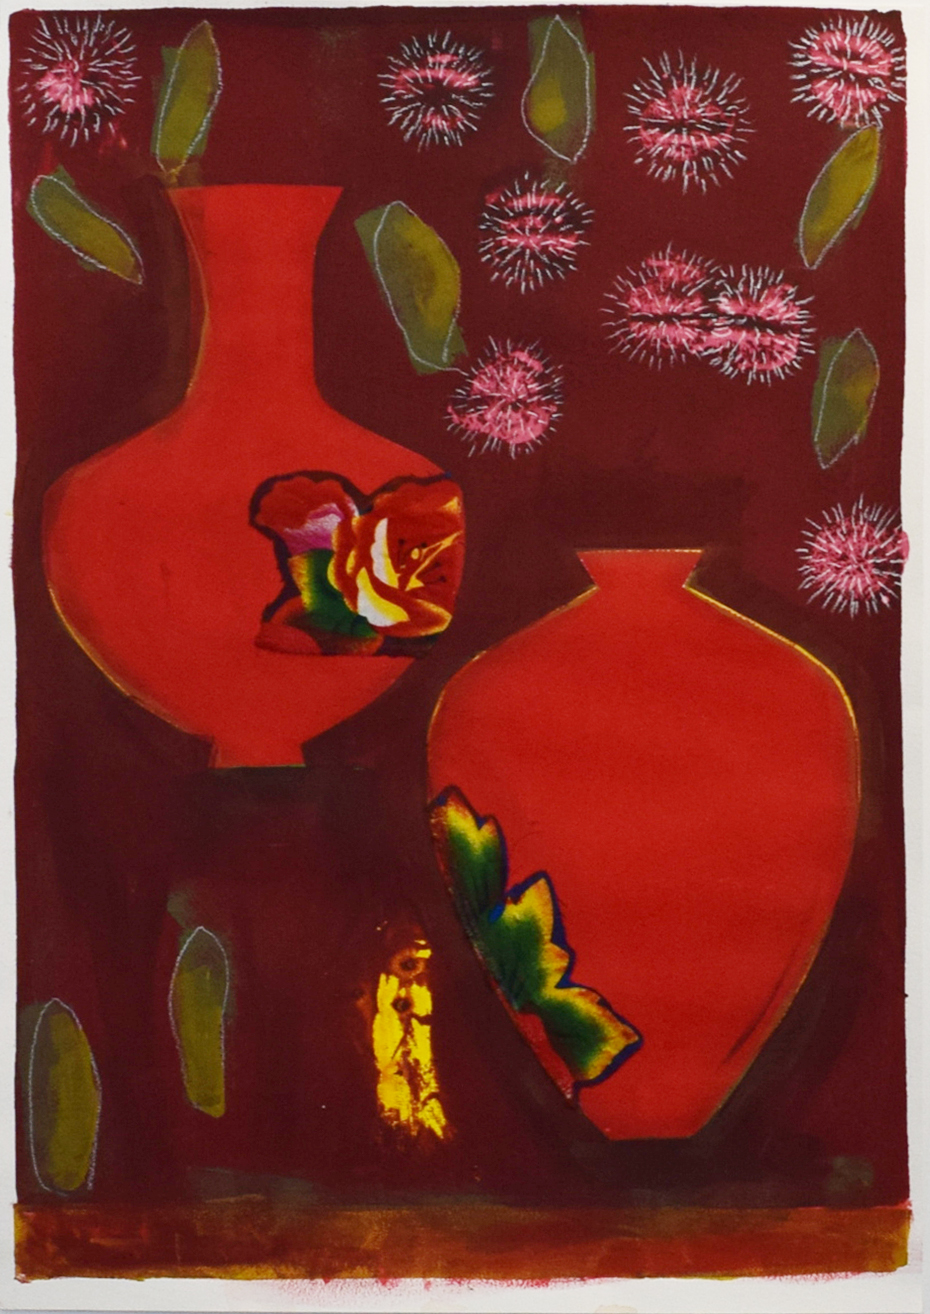 Sarah Toohey,  Study for Pincushion Hakeas in Red Vases